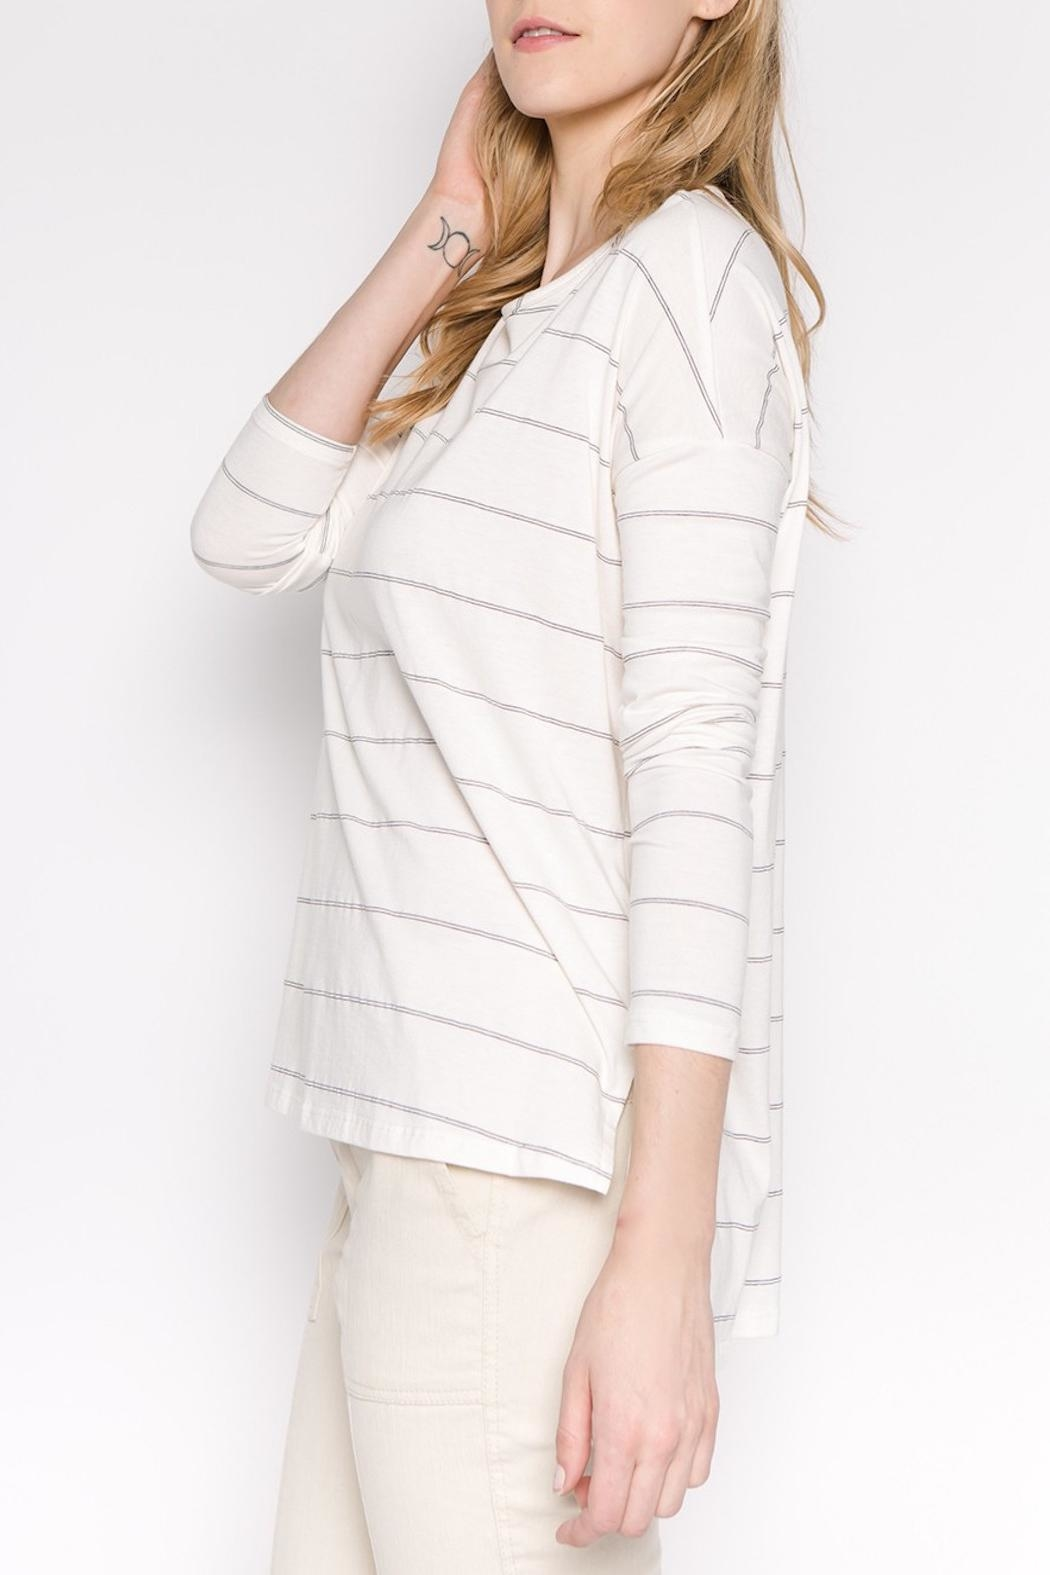 Apricot Lane Striped Casual Long-Sleeve - Front Full Image